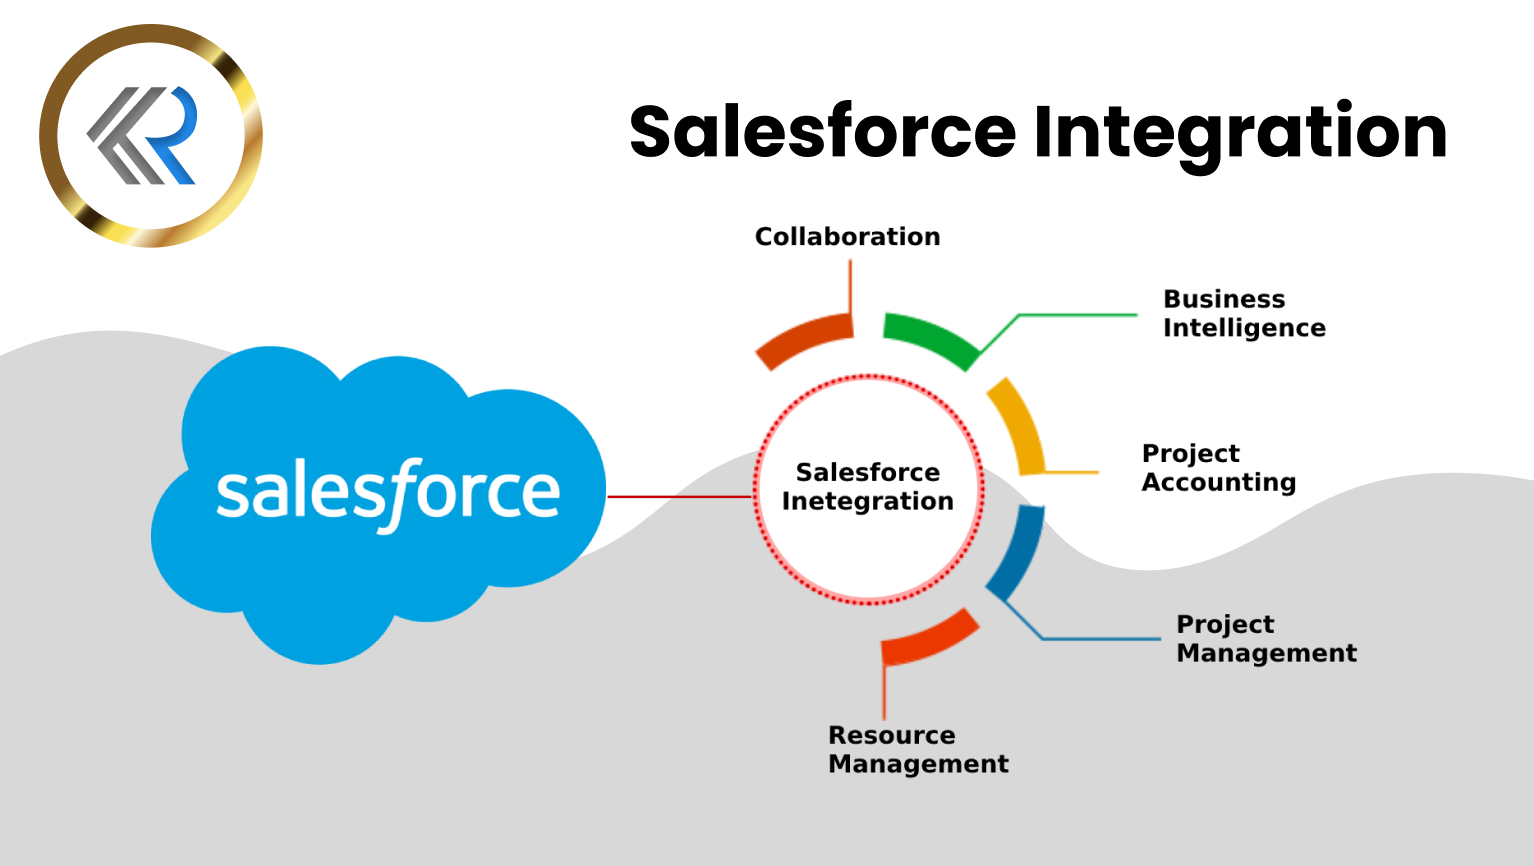 What is Salesforce Integration